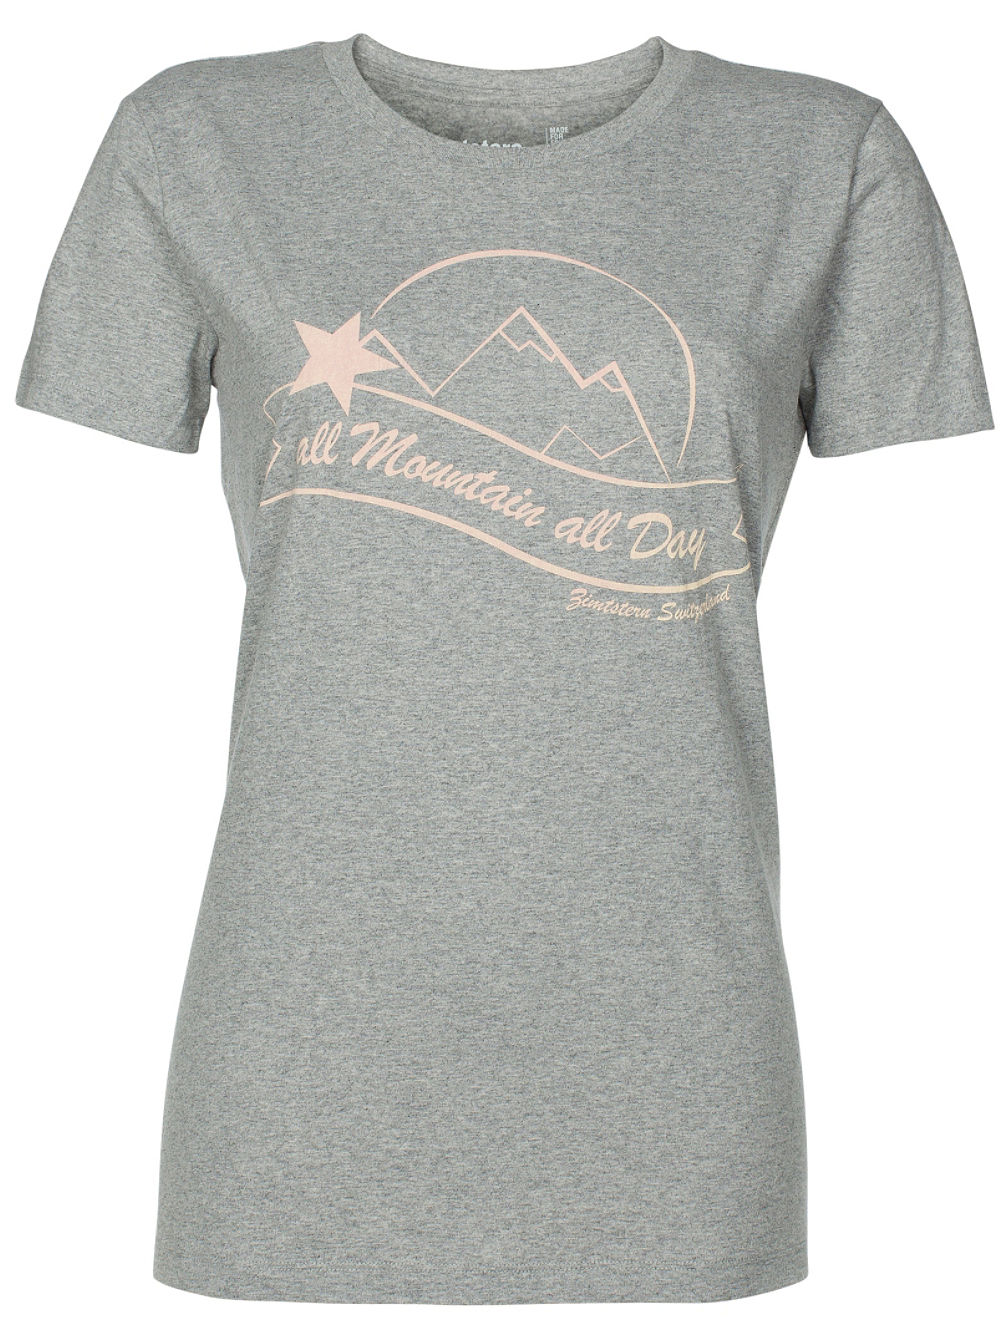 All Mountain T-Shirt